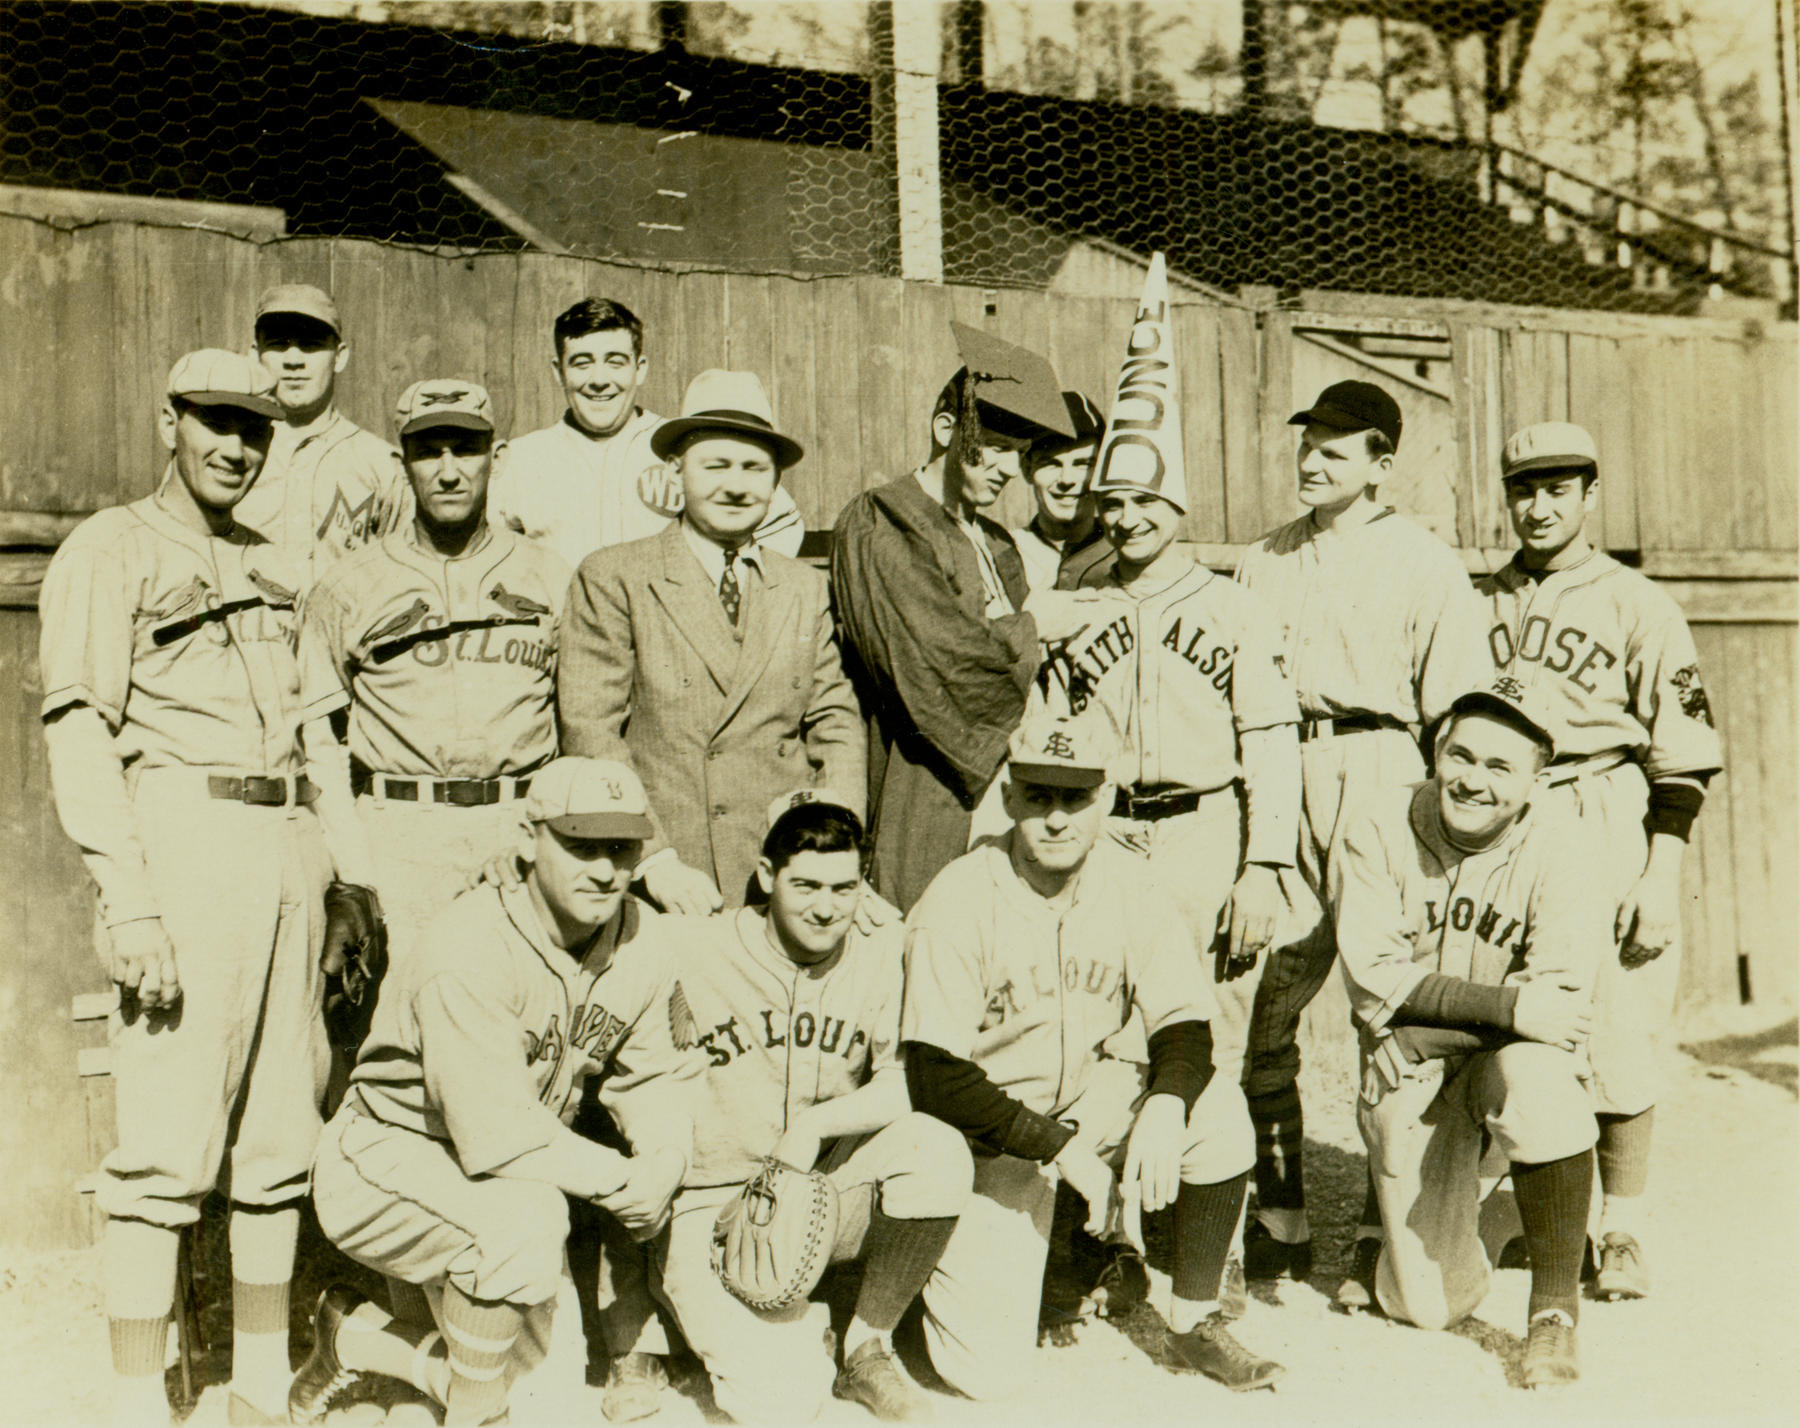 Instructors and students pose with Ray Doan (in suit and tie), who ran Ray Doan's Baseball School during the 1930s. - BL – 4716.73.42 (National Baseball Hall of Fame Library)